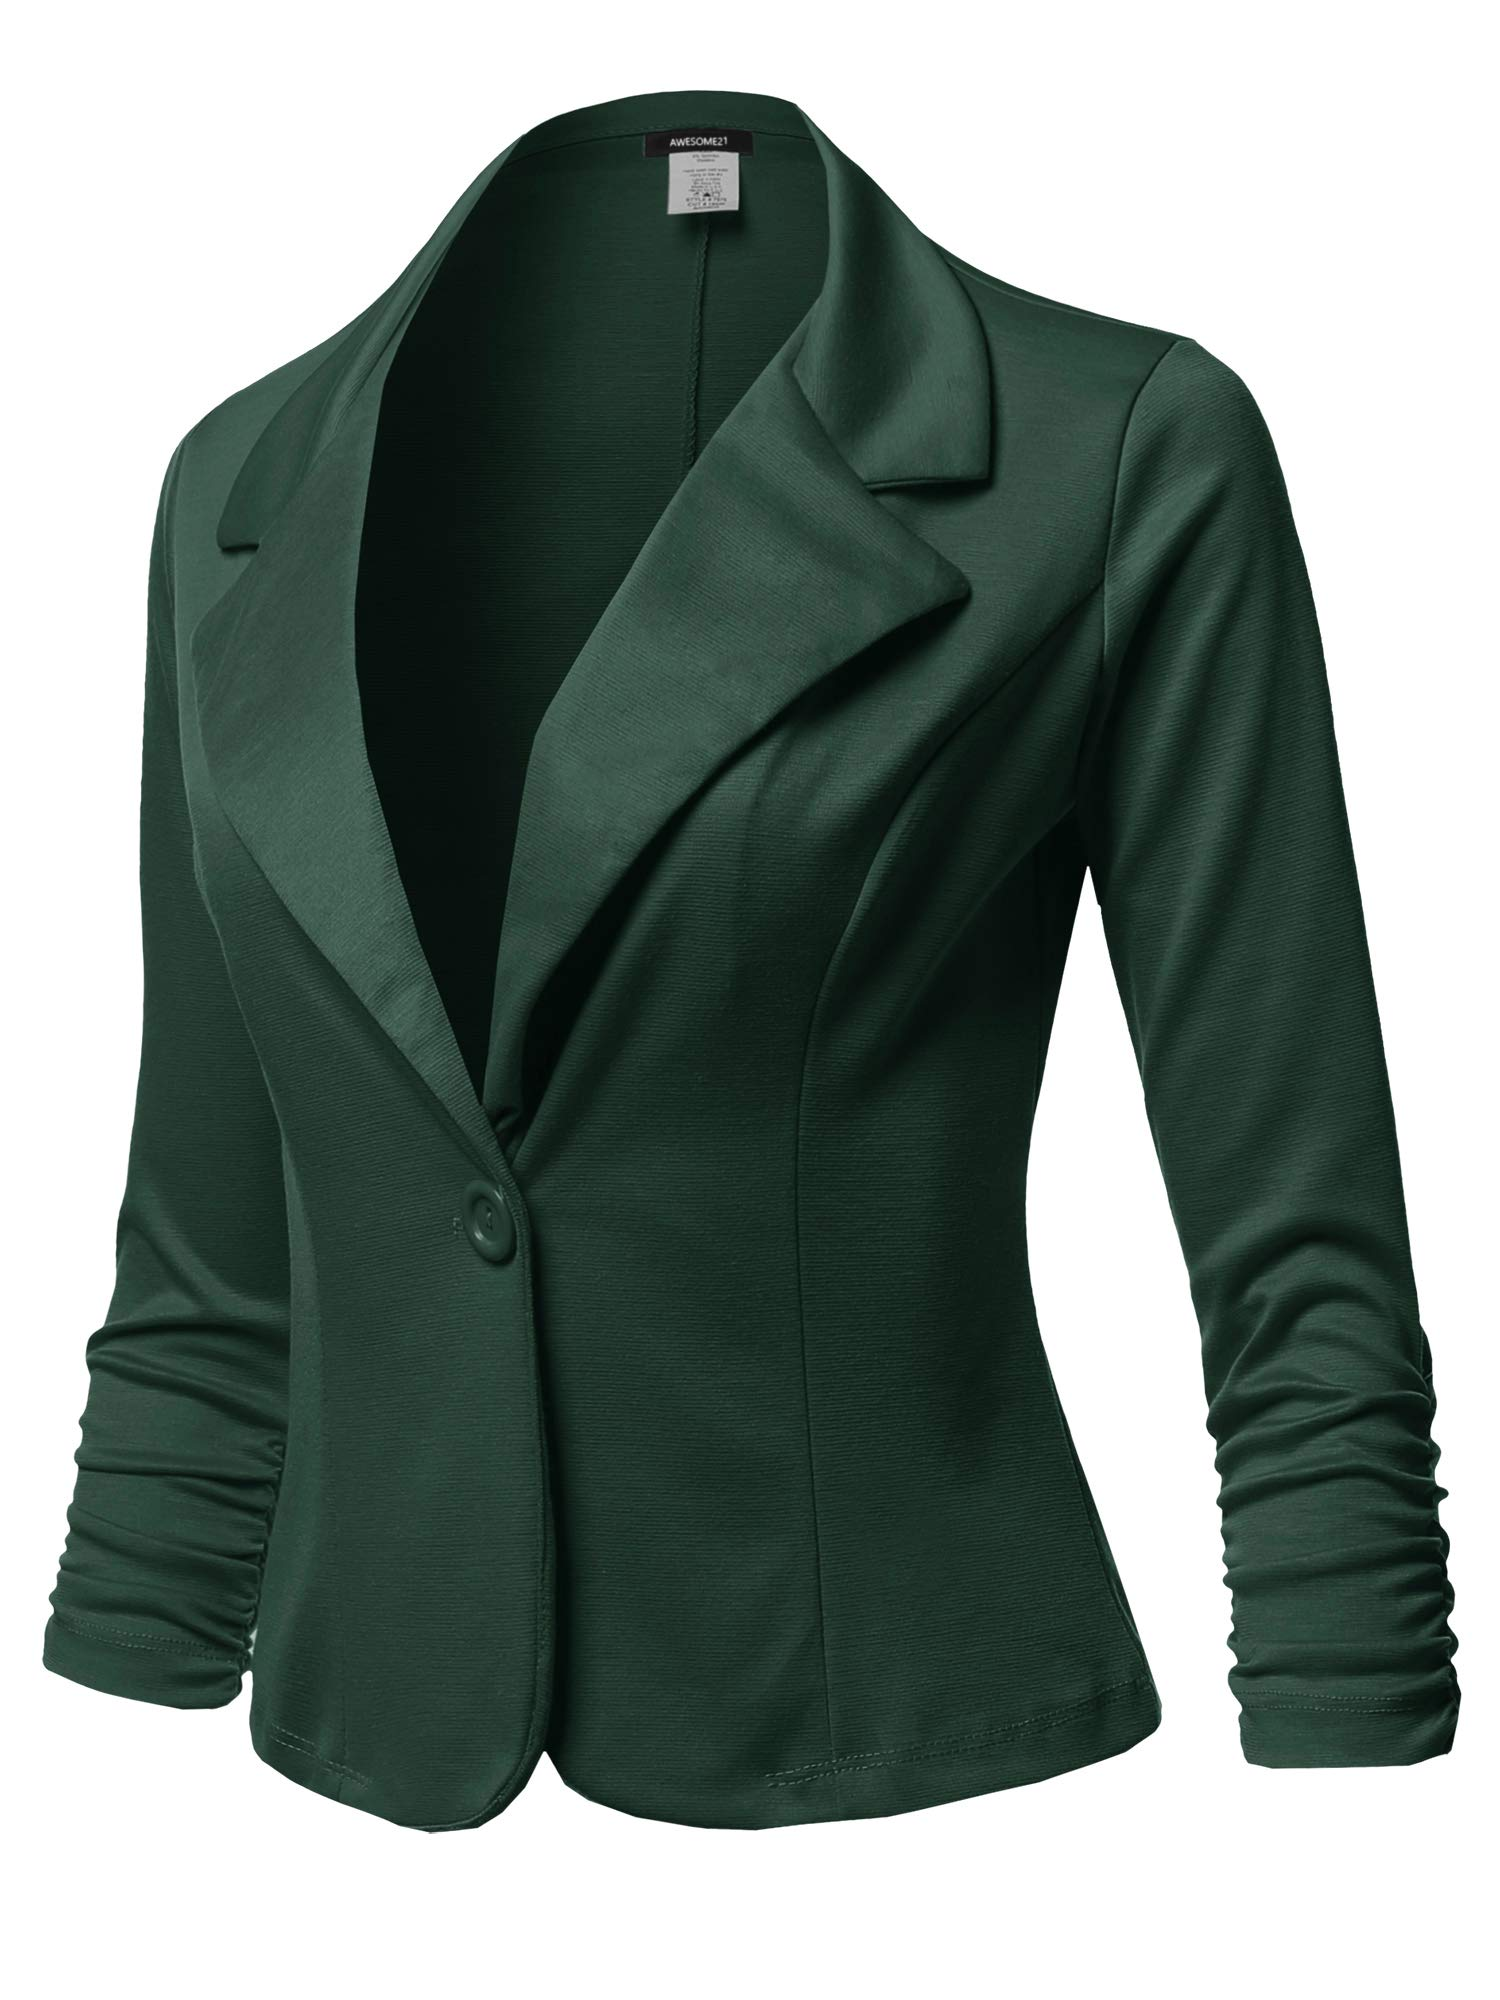 Awesome21 Solid Formal Button up Shirring Sleeves Blazer - Made in USA Hunter Green 2XL